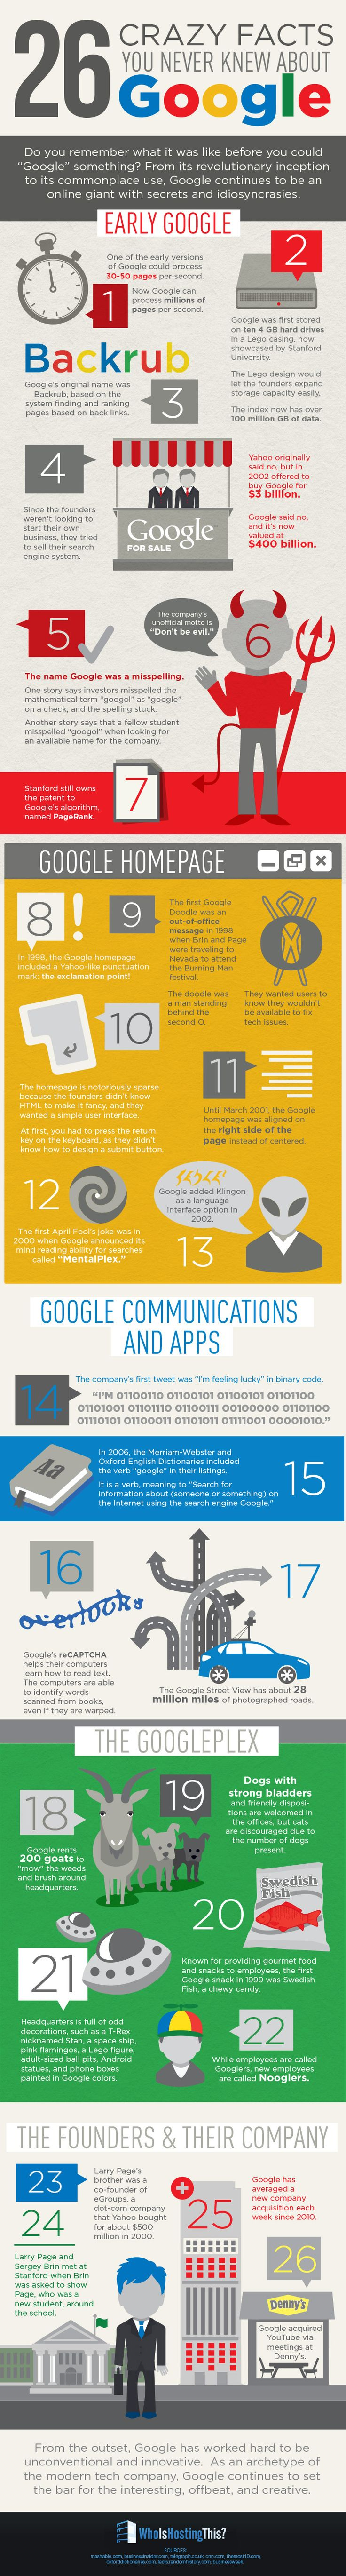 26 Crazy Facts you never knew about Google #infographic